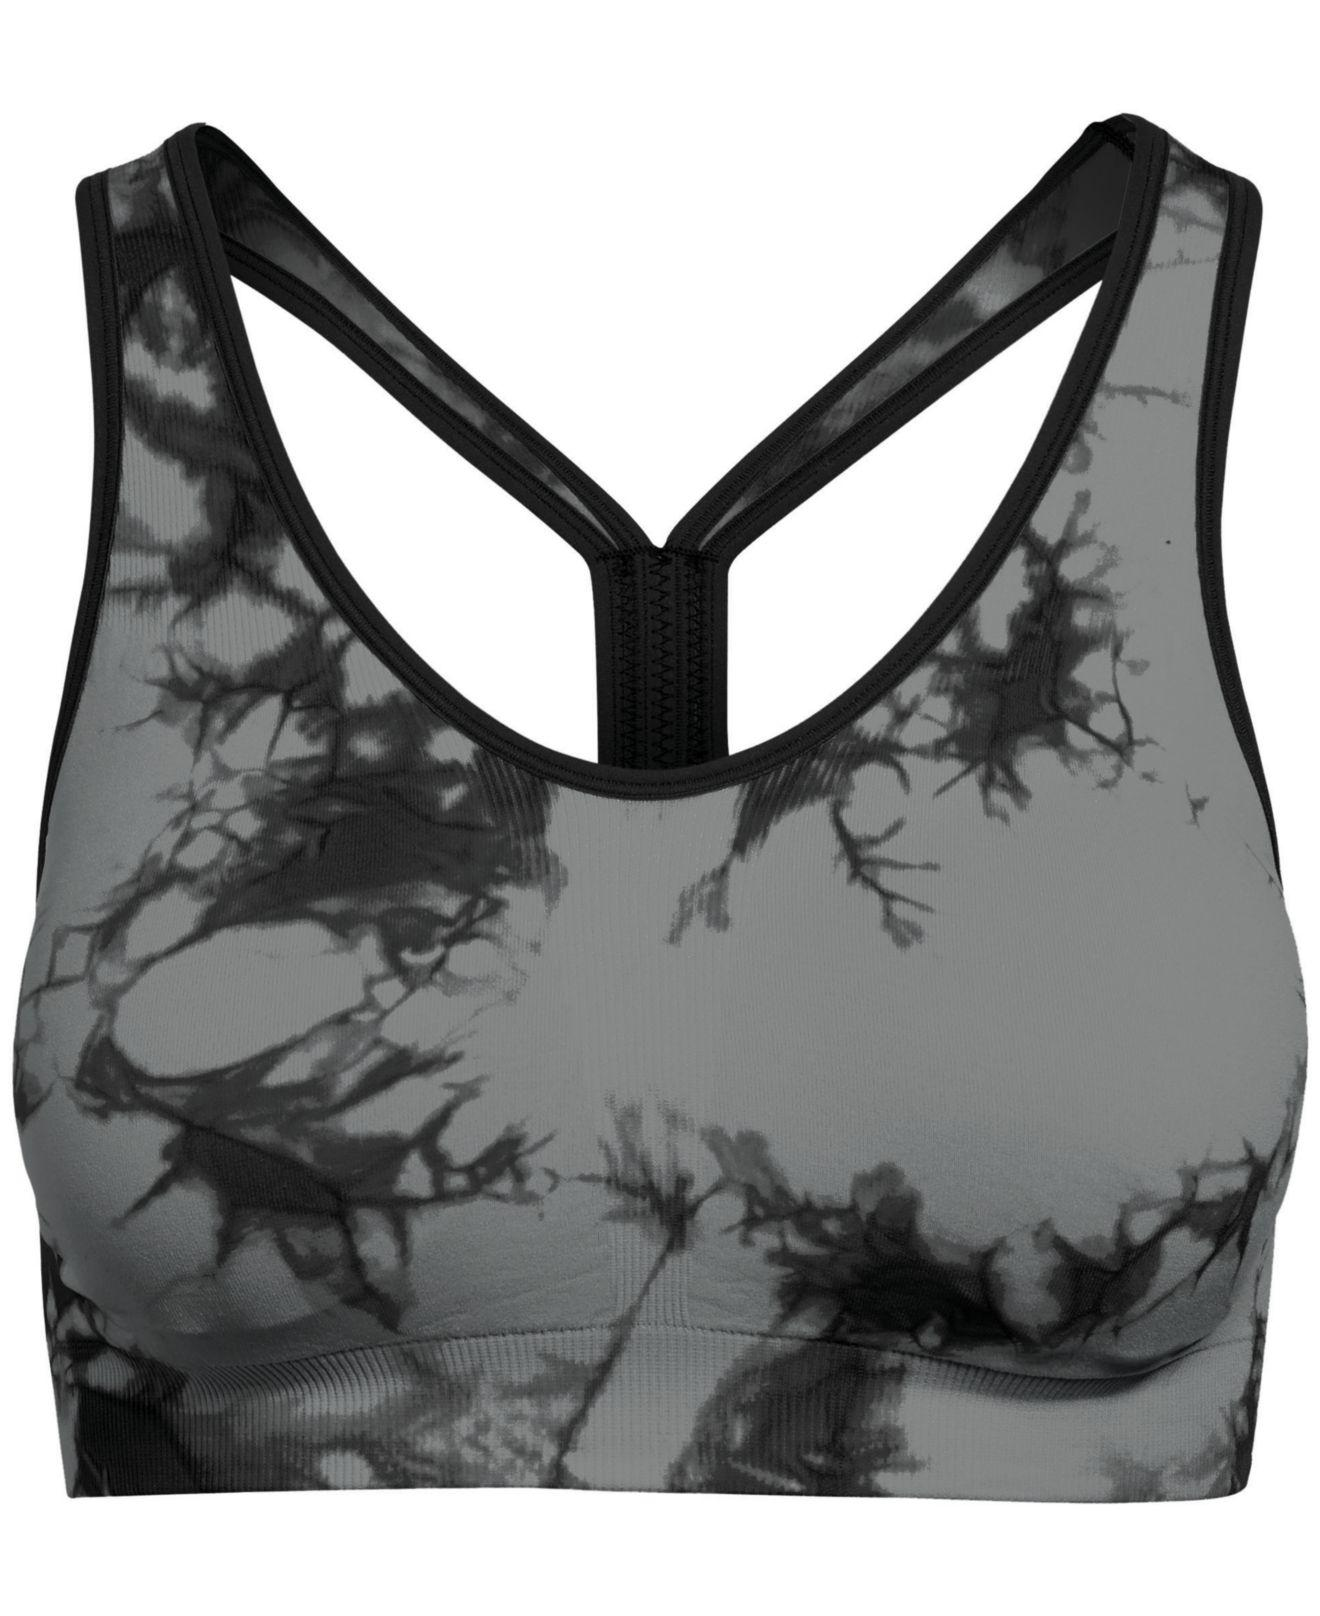 f64707f400 Lyst - Champion Tie-dyed Racerback Low-impact Sports Bra in Black